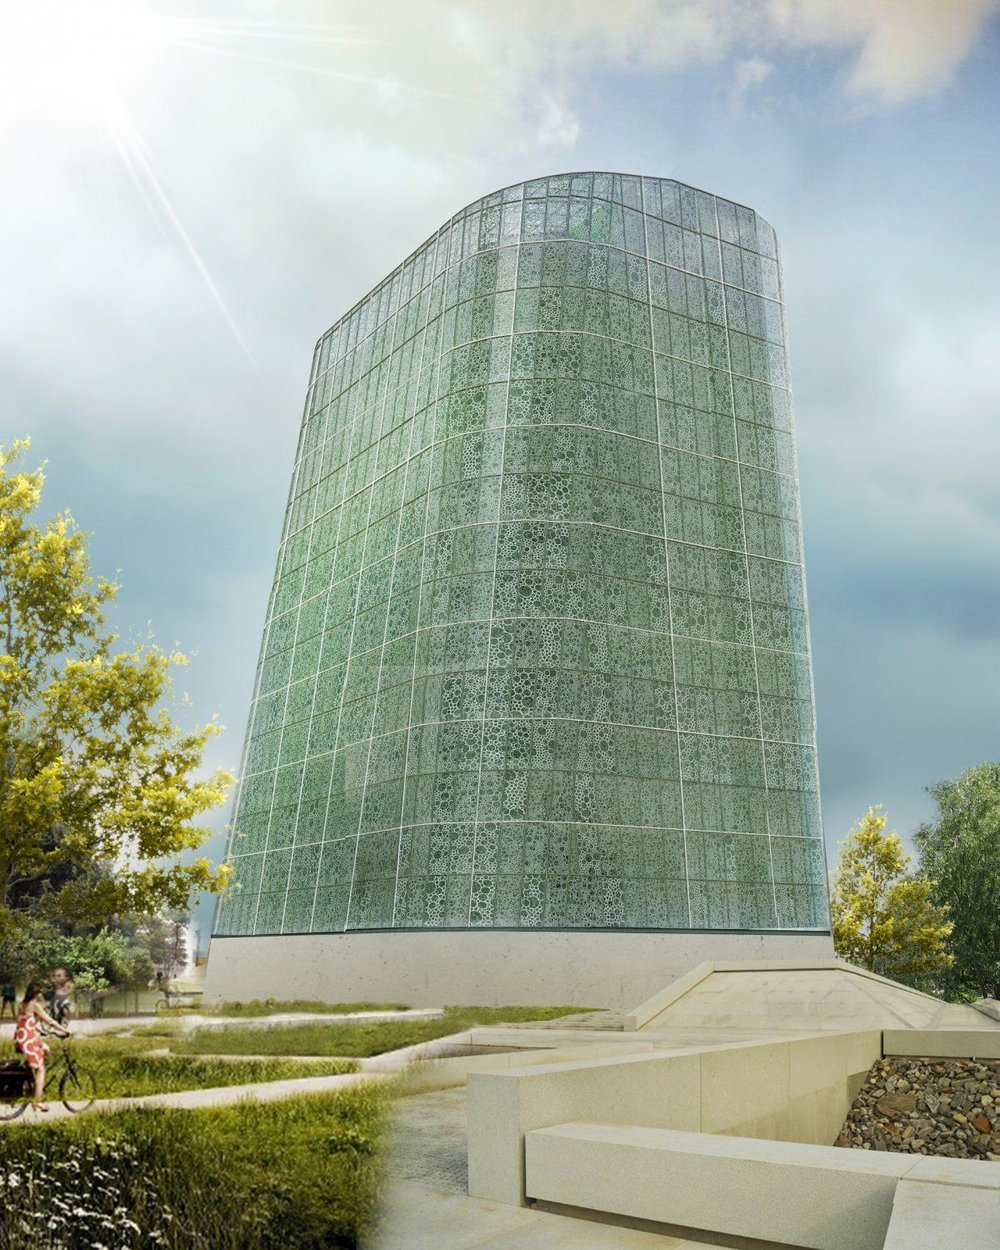 This building will produce approximately 550 tons of vegetables annually. (Image Credit: Plantagon)